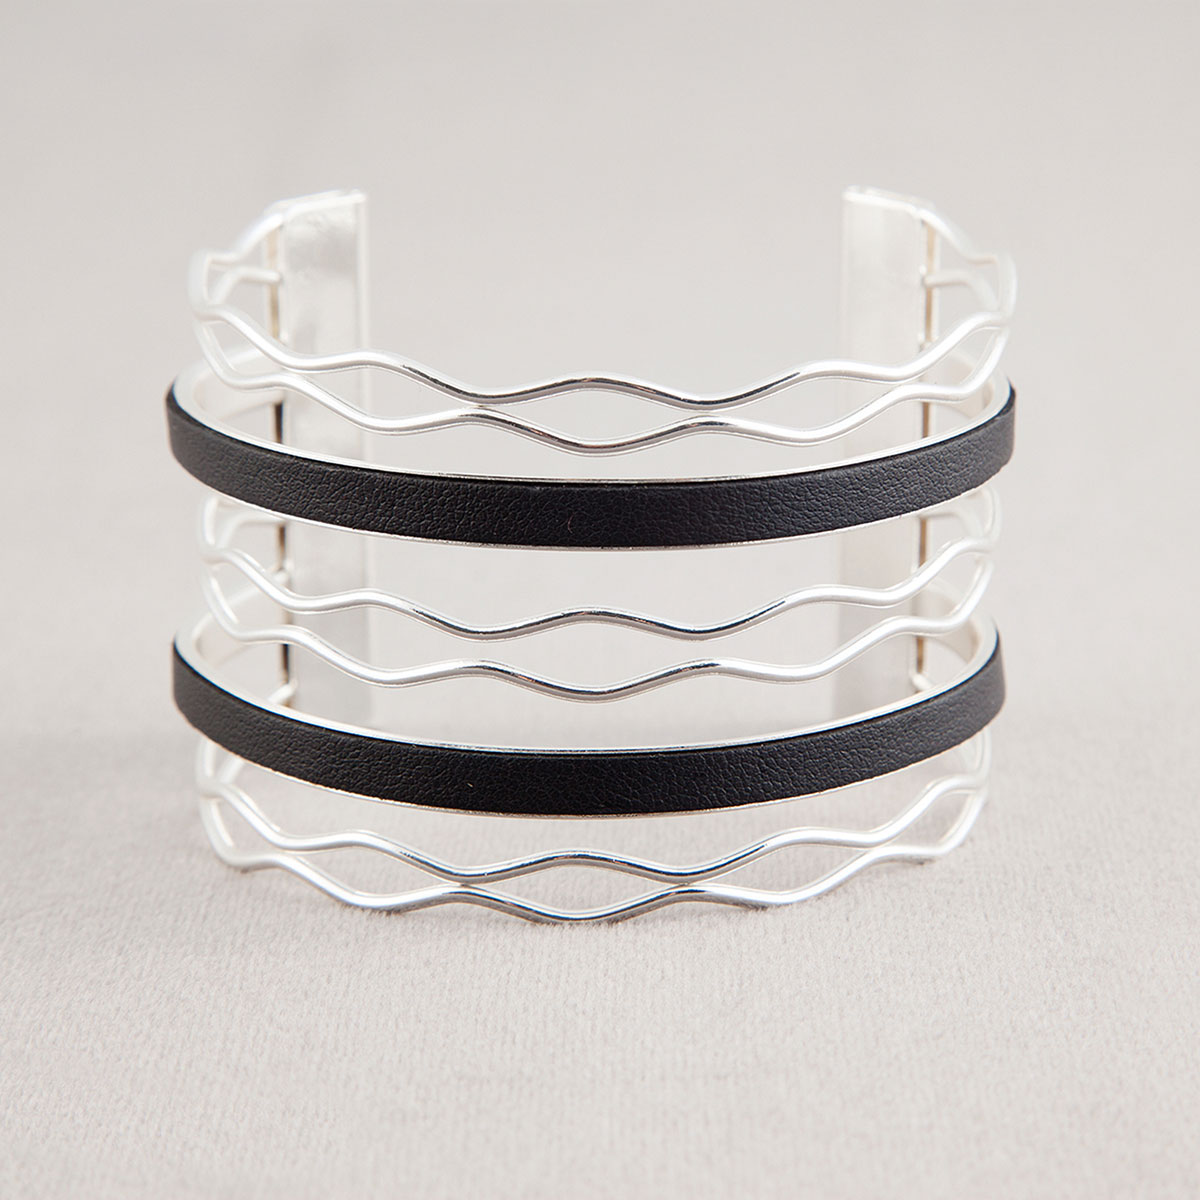 Silver Diamond with Black Trim Cuff Bracelet